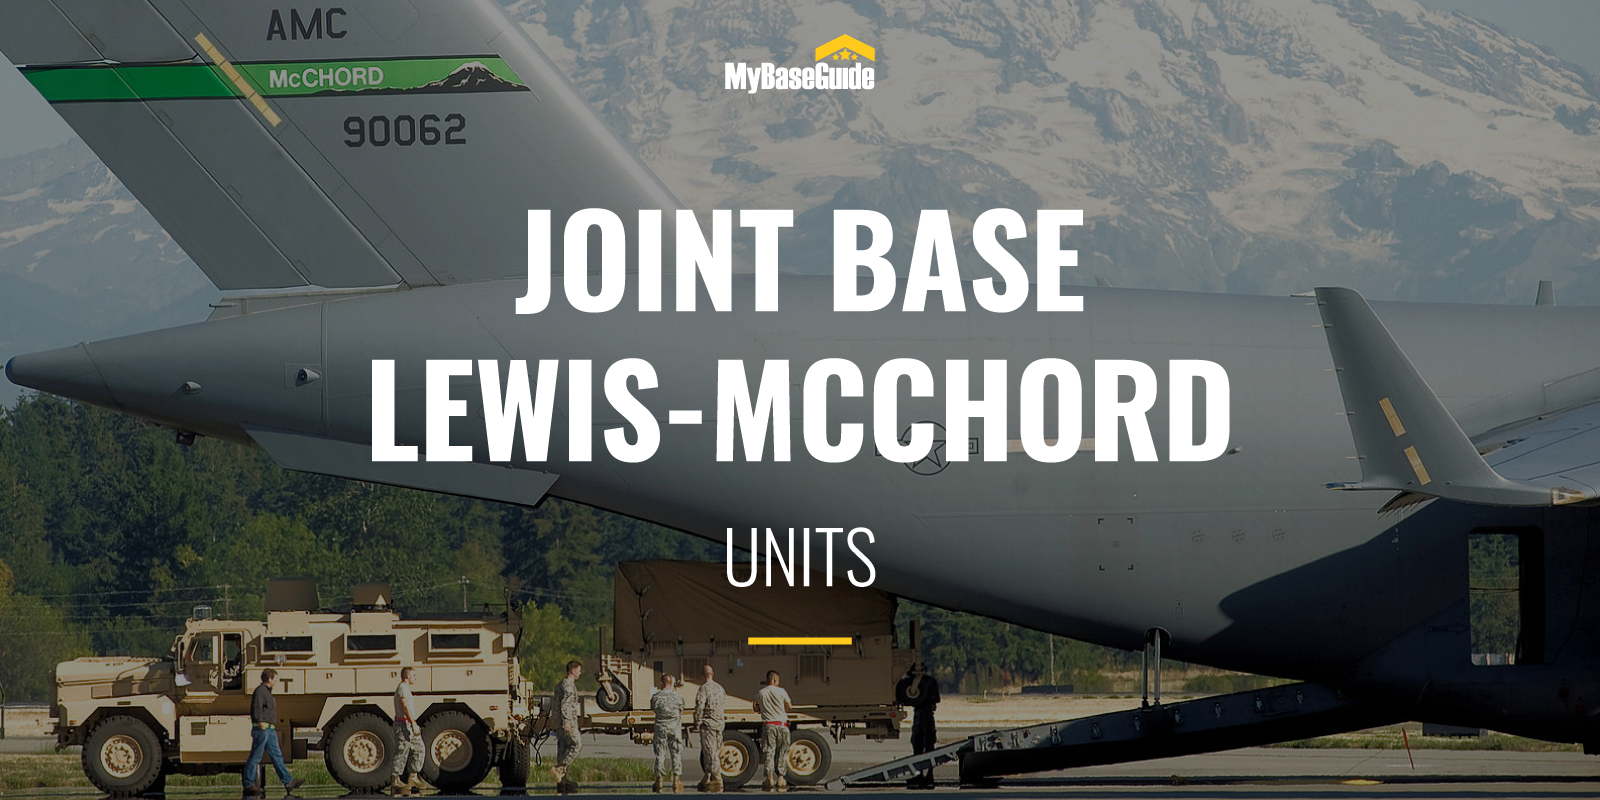 Joint Base Lewis-McChord Units